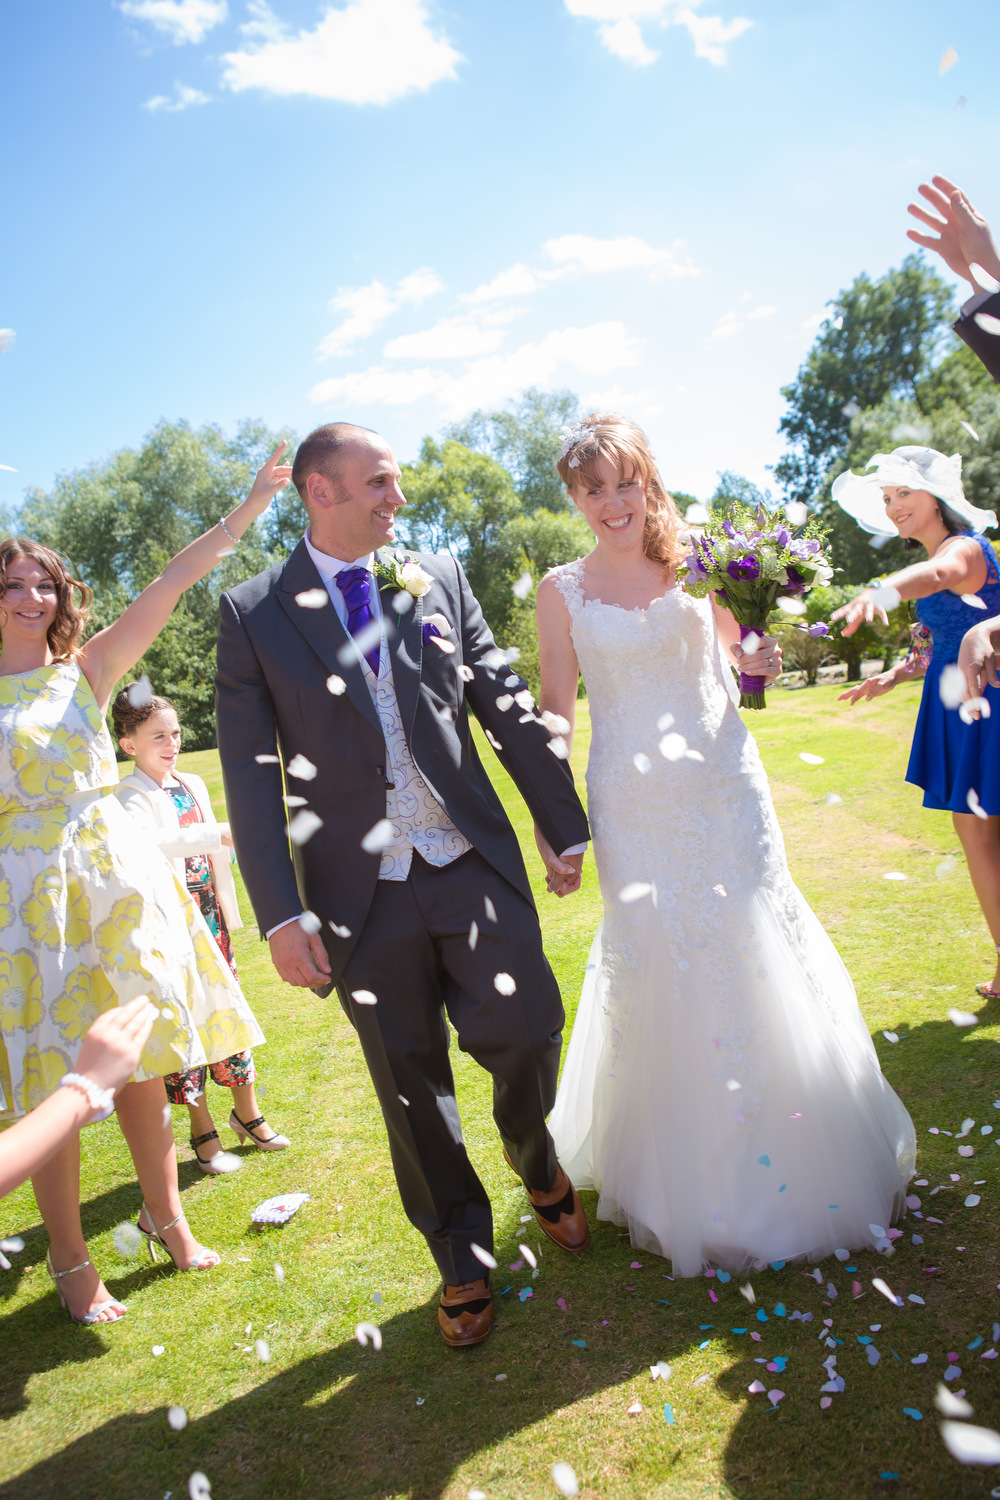 charnwood_weddings_Rothley_Court_Kelly_Rich171.JPG